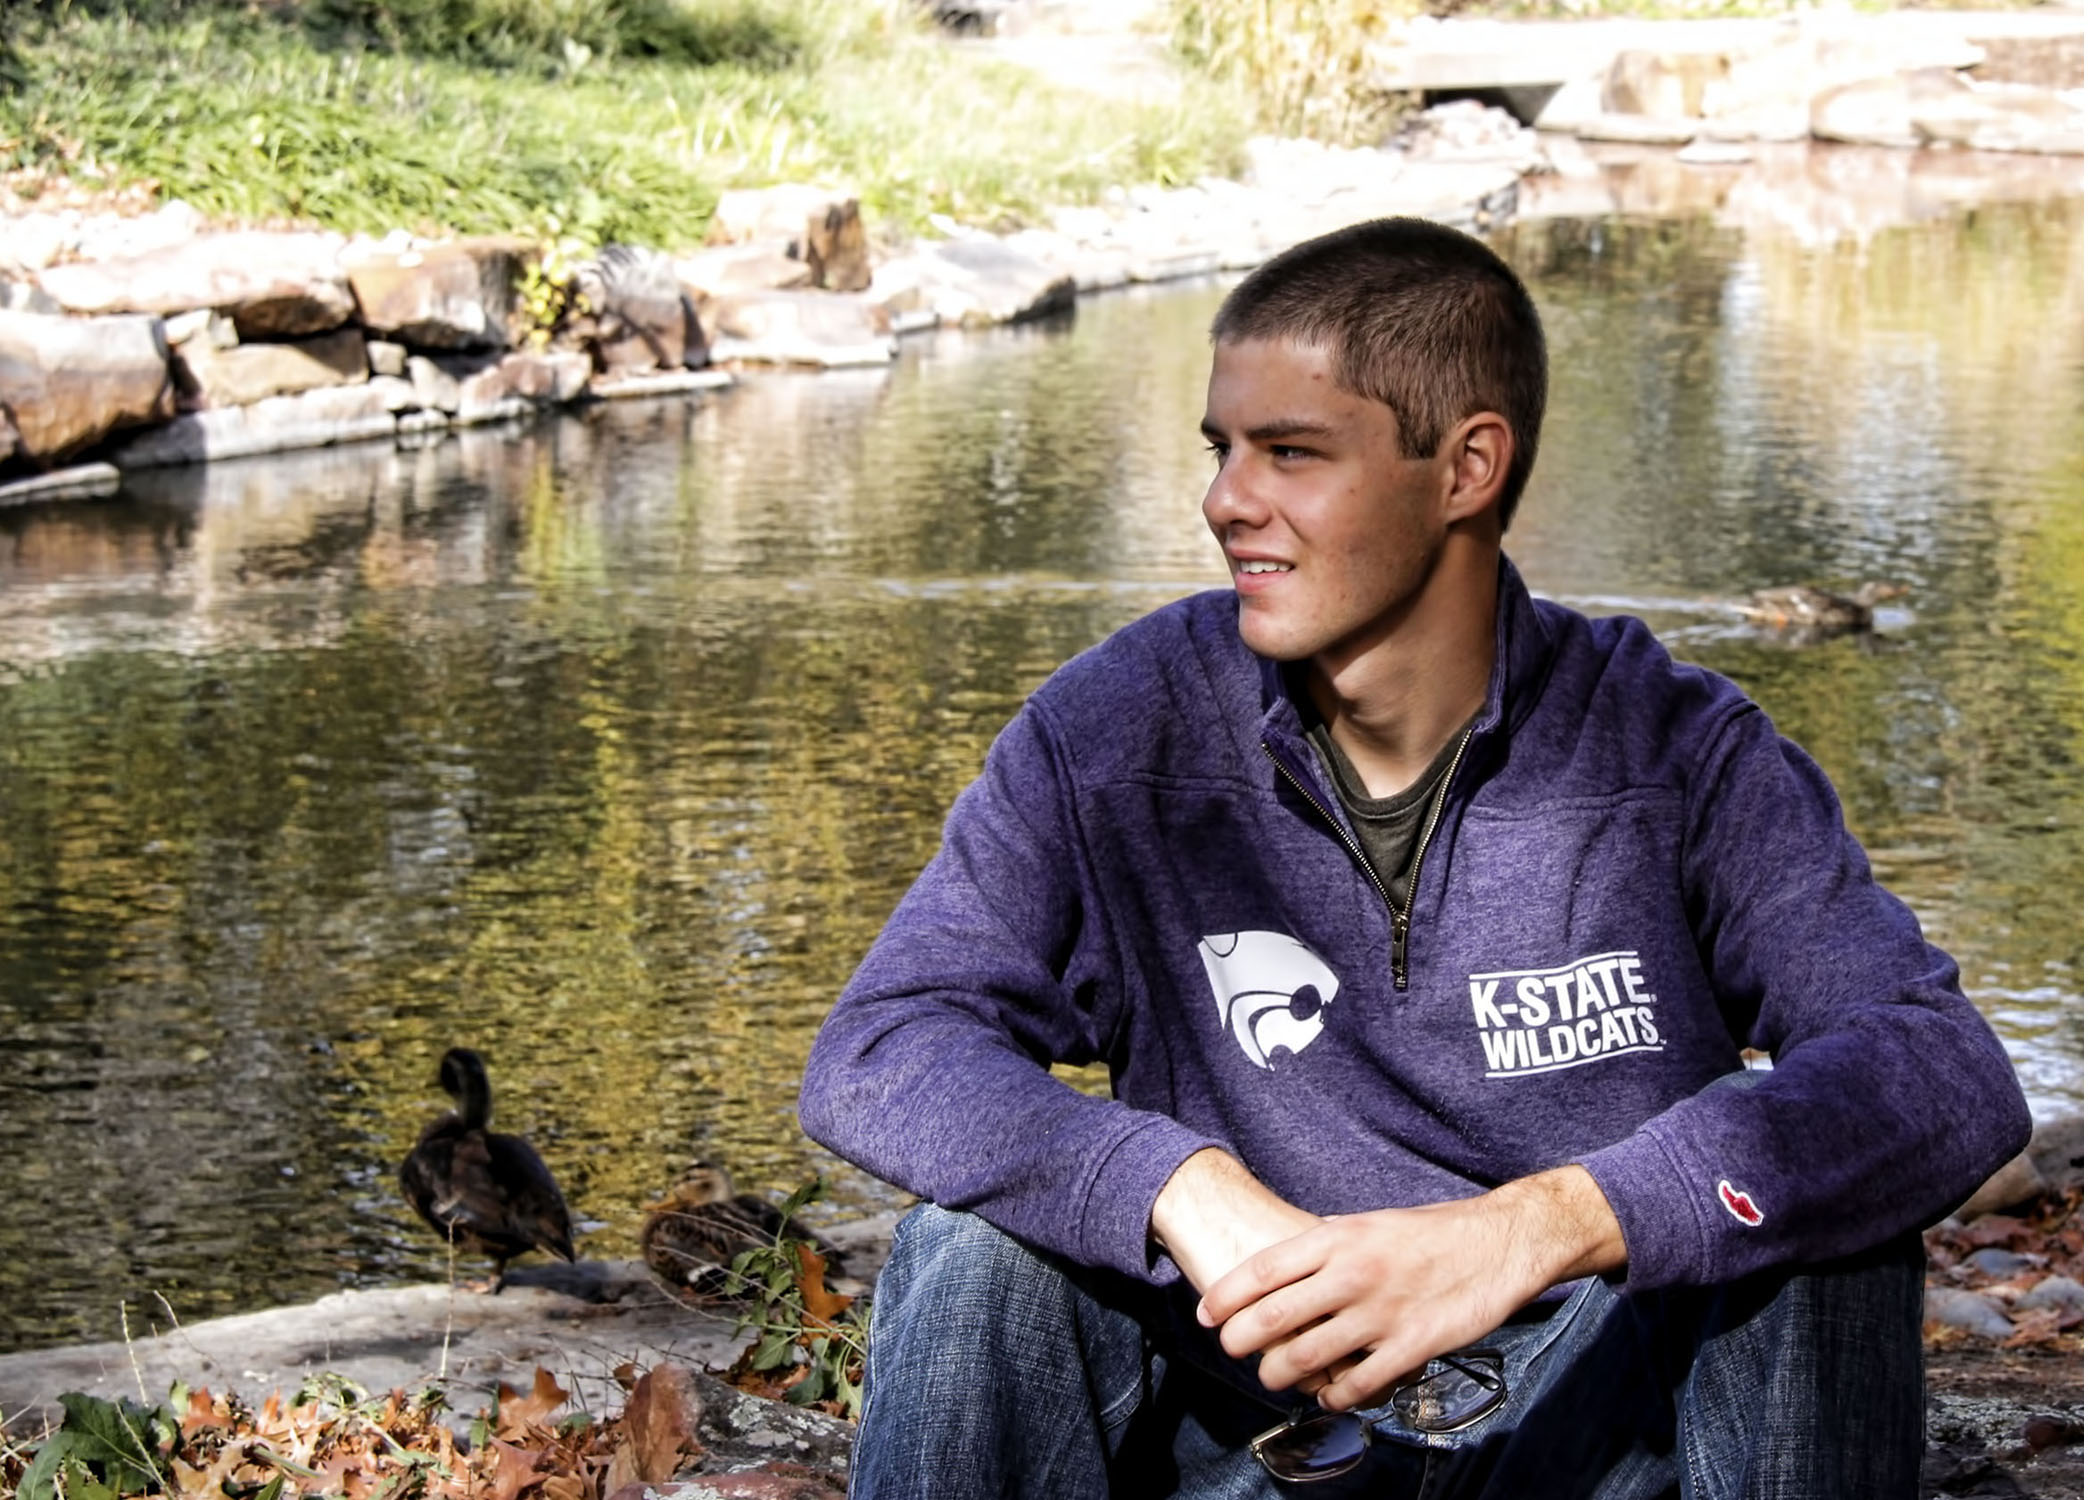 BRUCE_15_SETTING_ON_ROCKS_WITH_K_STATE_SHIRT